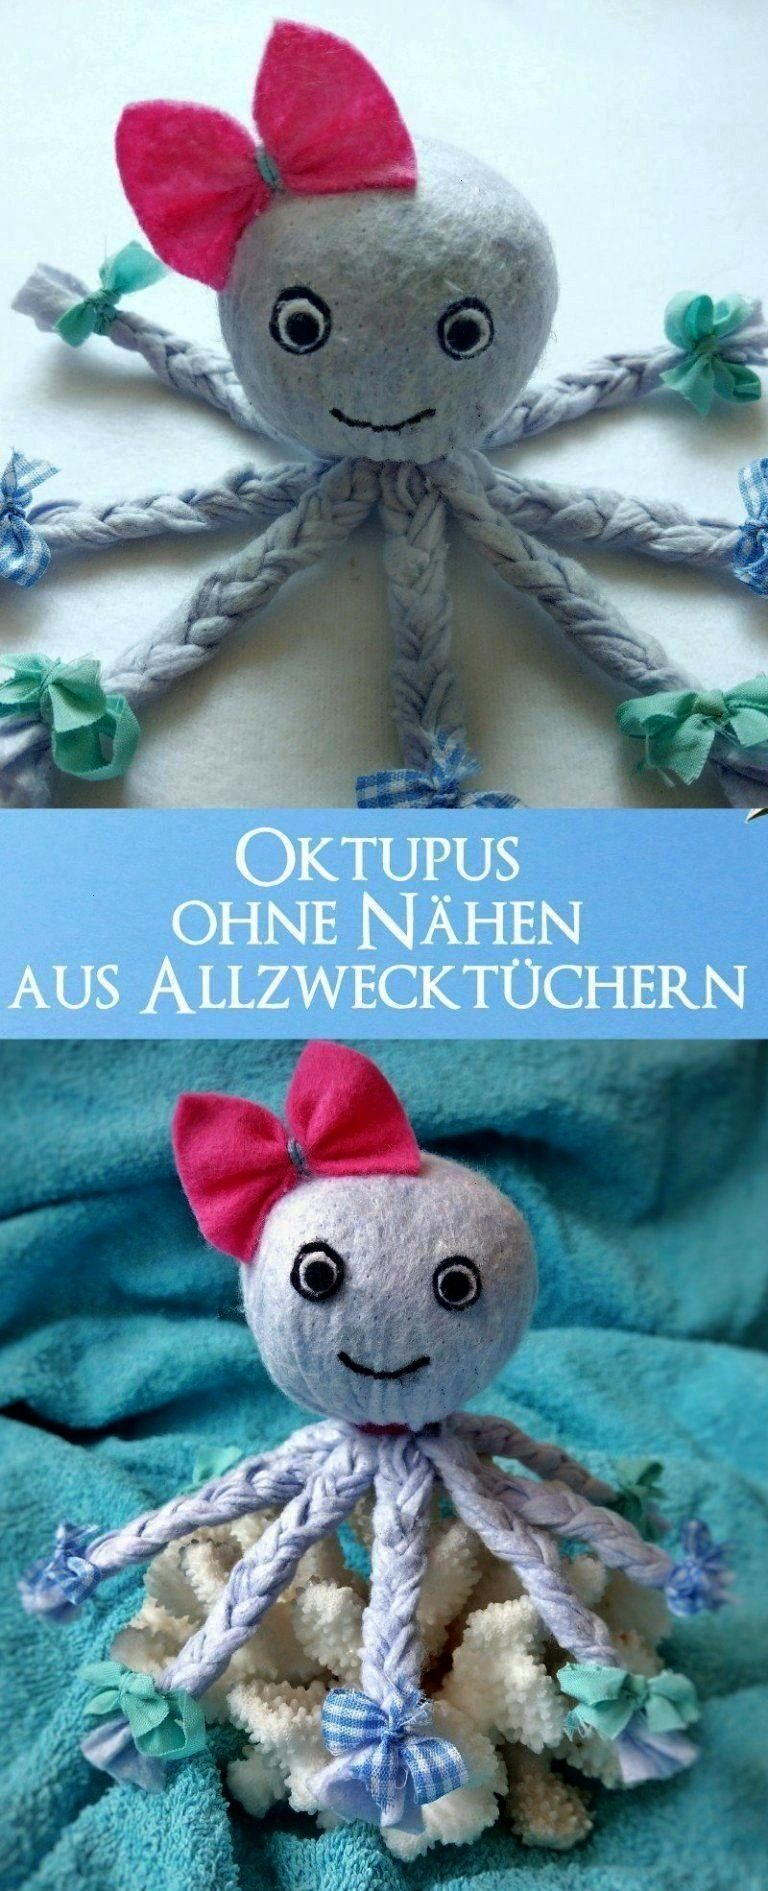 out of allpurpose towels  as a decoration or a cuddly blanketblanketMake octopus out of allpurpose towels  as a decoration or a cuddly blanketblanket Octopus Deko basteln...